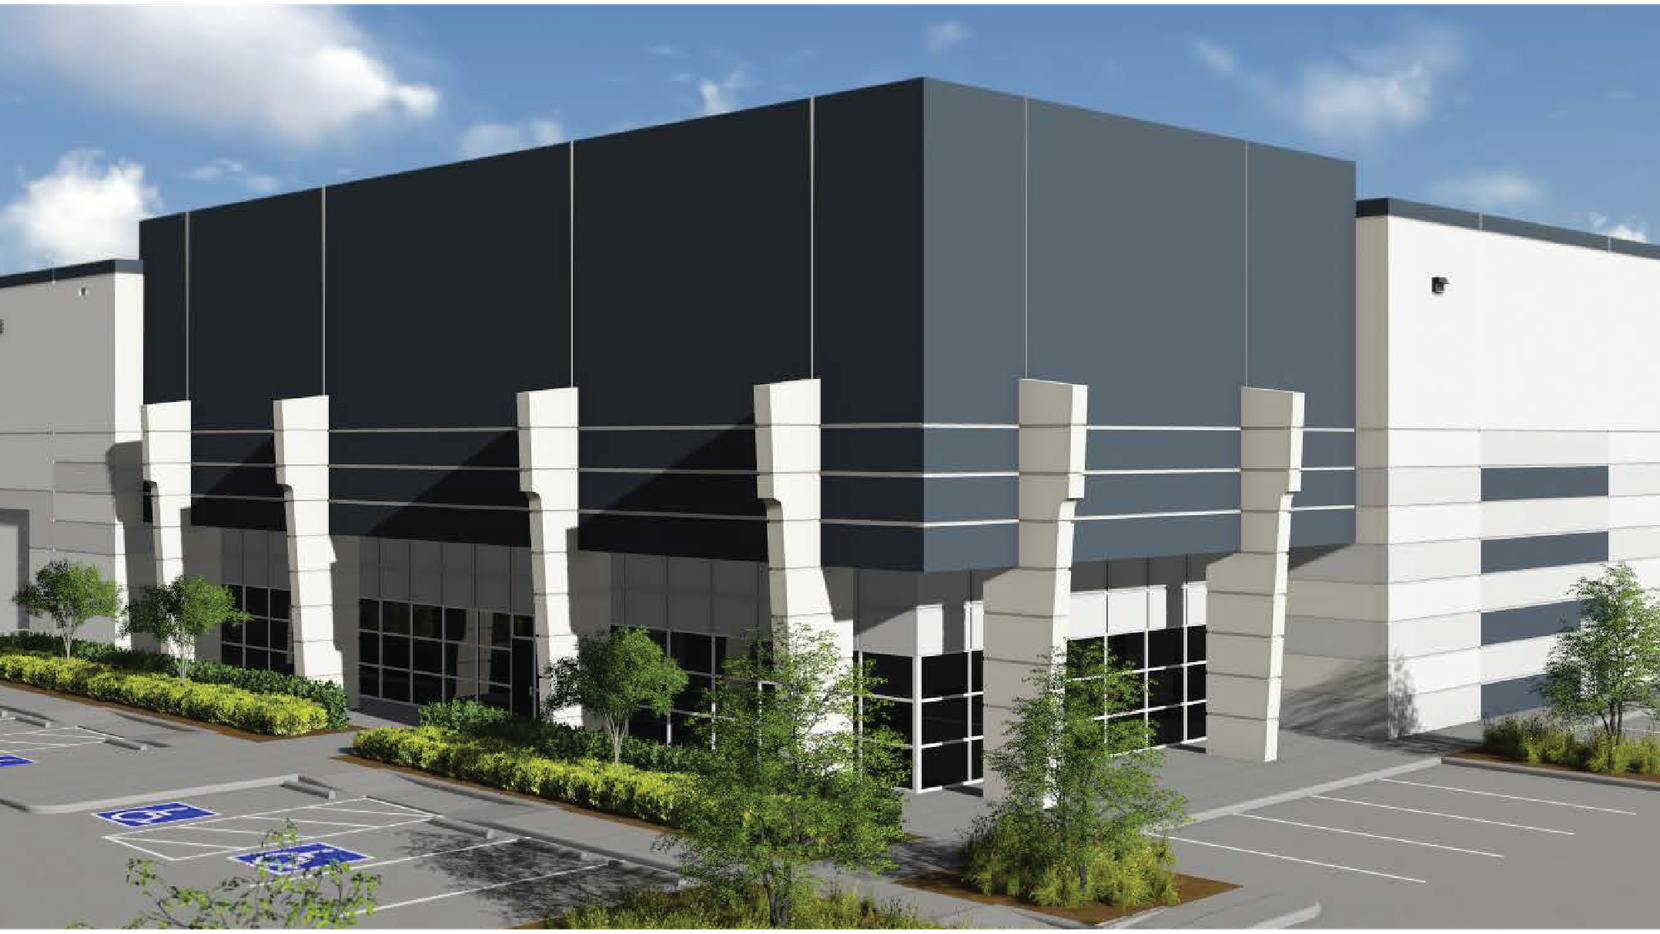 UPS is renting more than 1 million square feet in the new Arlington Commerce Center near I-20.